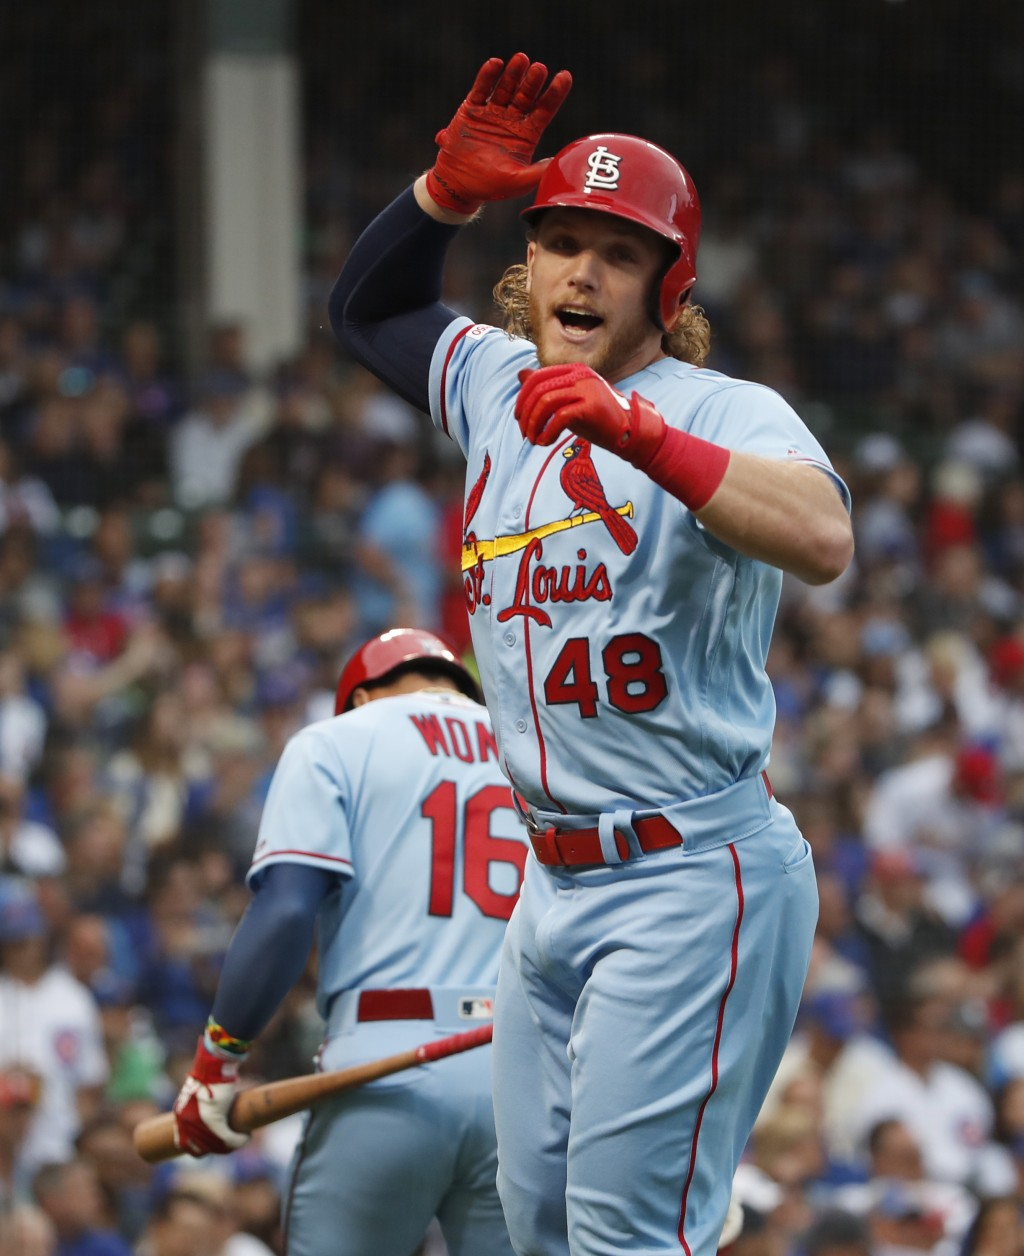 St. Louis Cardinals' Harrison Bader celebrates after hitting a solo home run against the Chicago Cubs during the first inning of a baseball game Satur